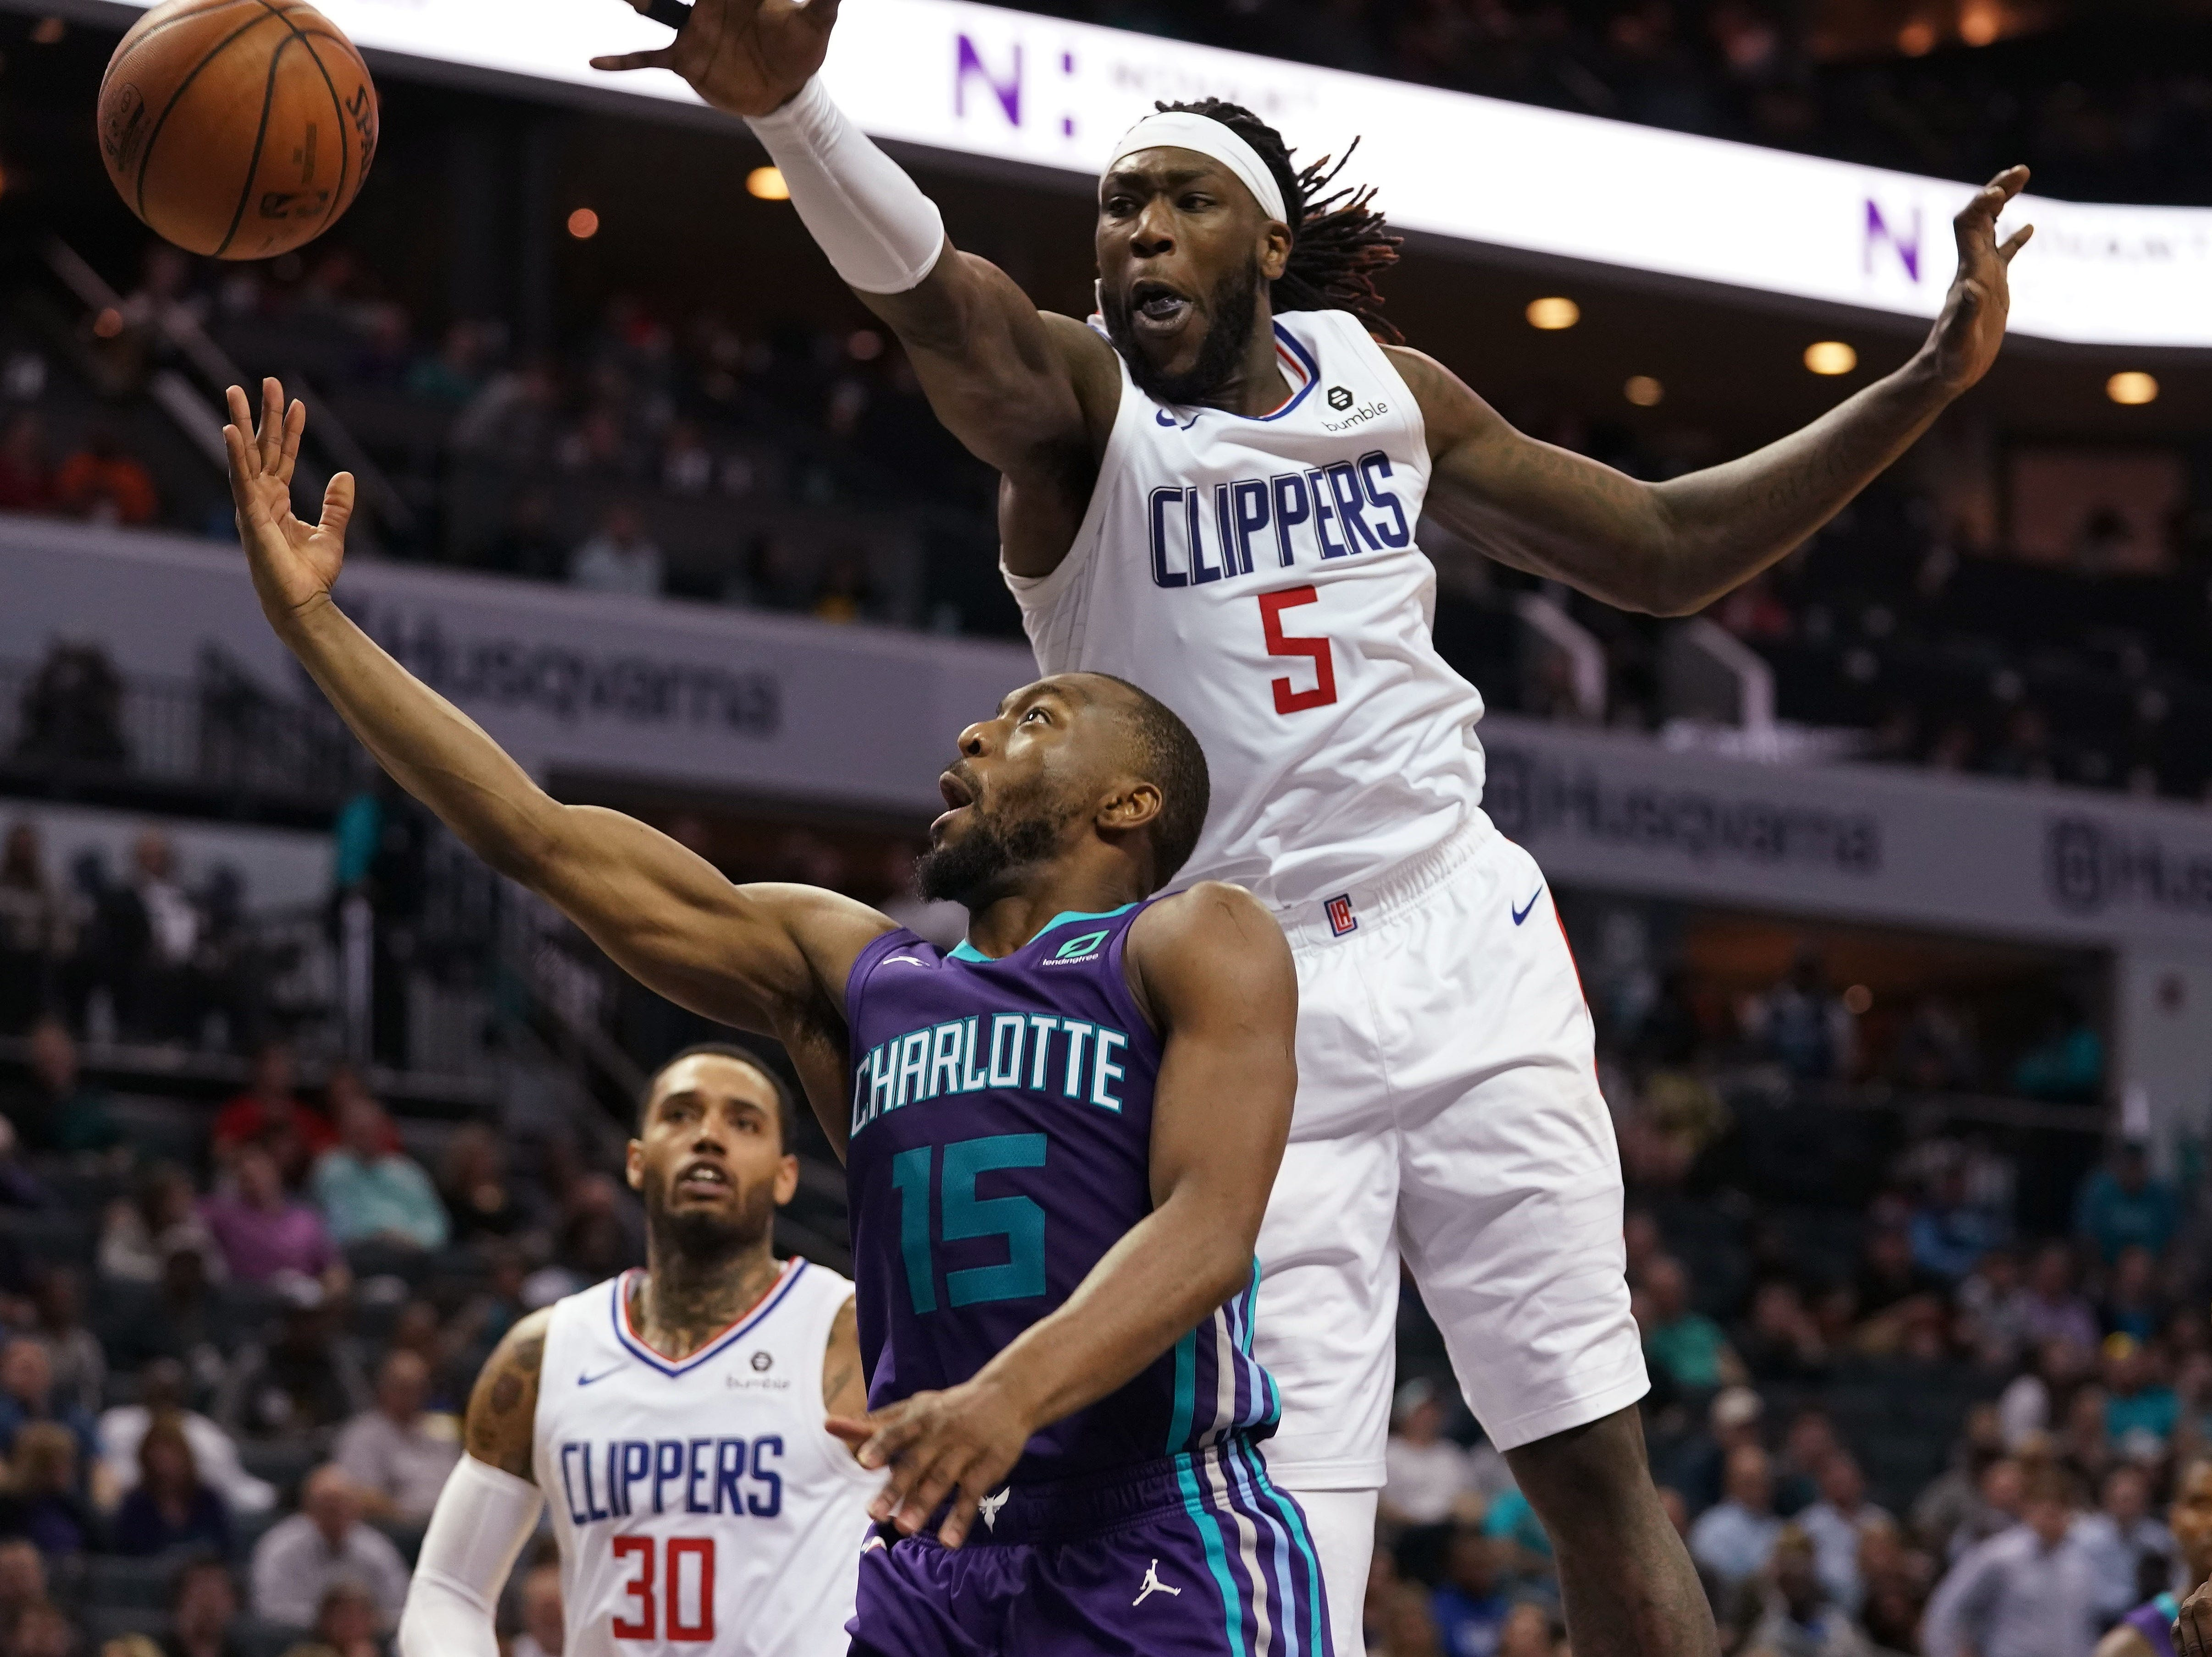 Feb. 5: LA Clippers forward Montrezl Harrell (5) attempts to block a shot by Charlotte Hornets guard Kemba Walker (15) during the second half at the Spectrum Center.